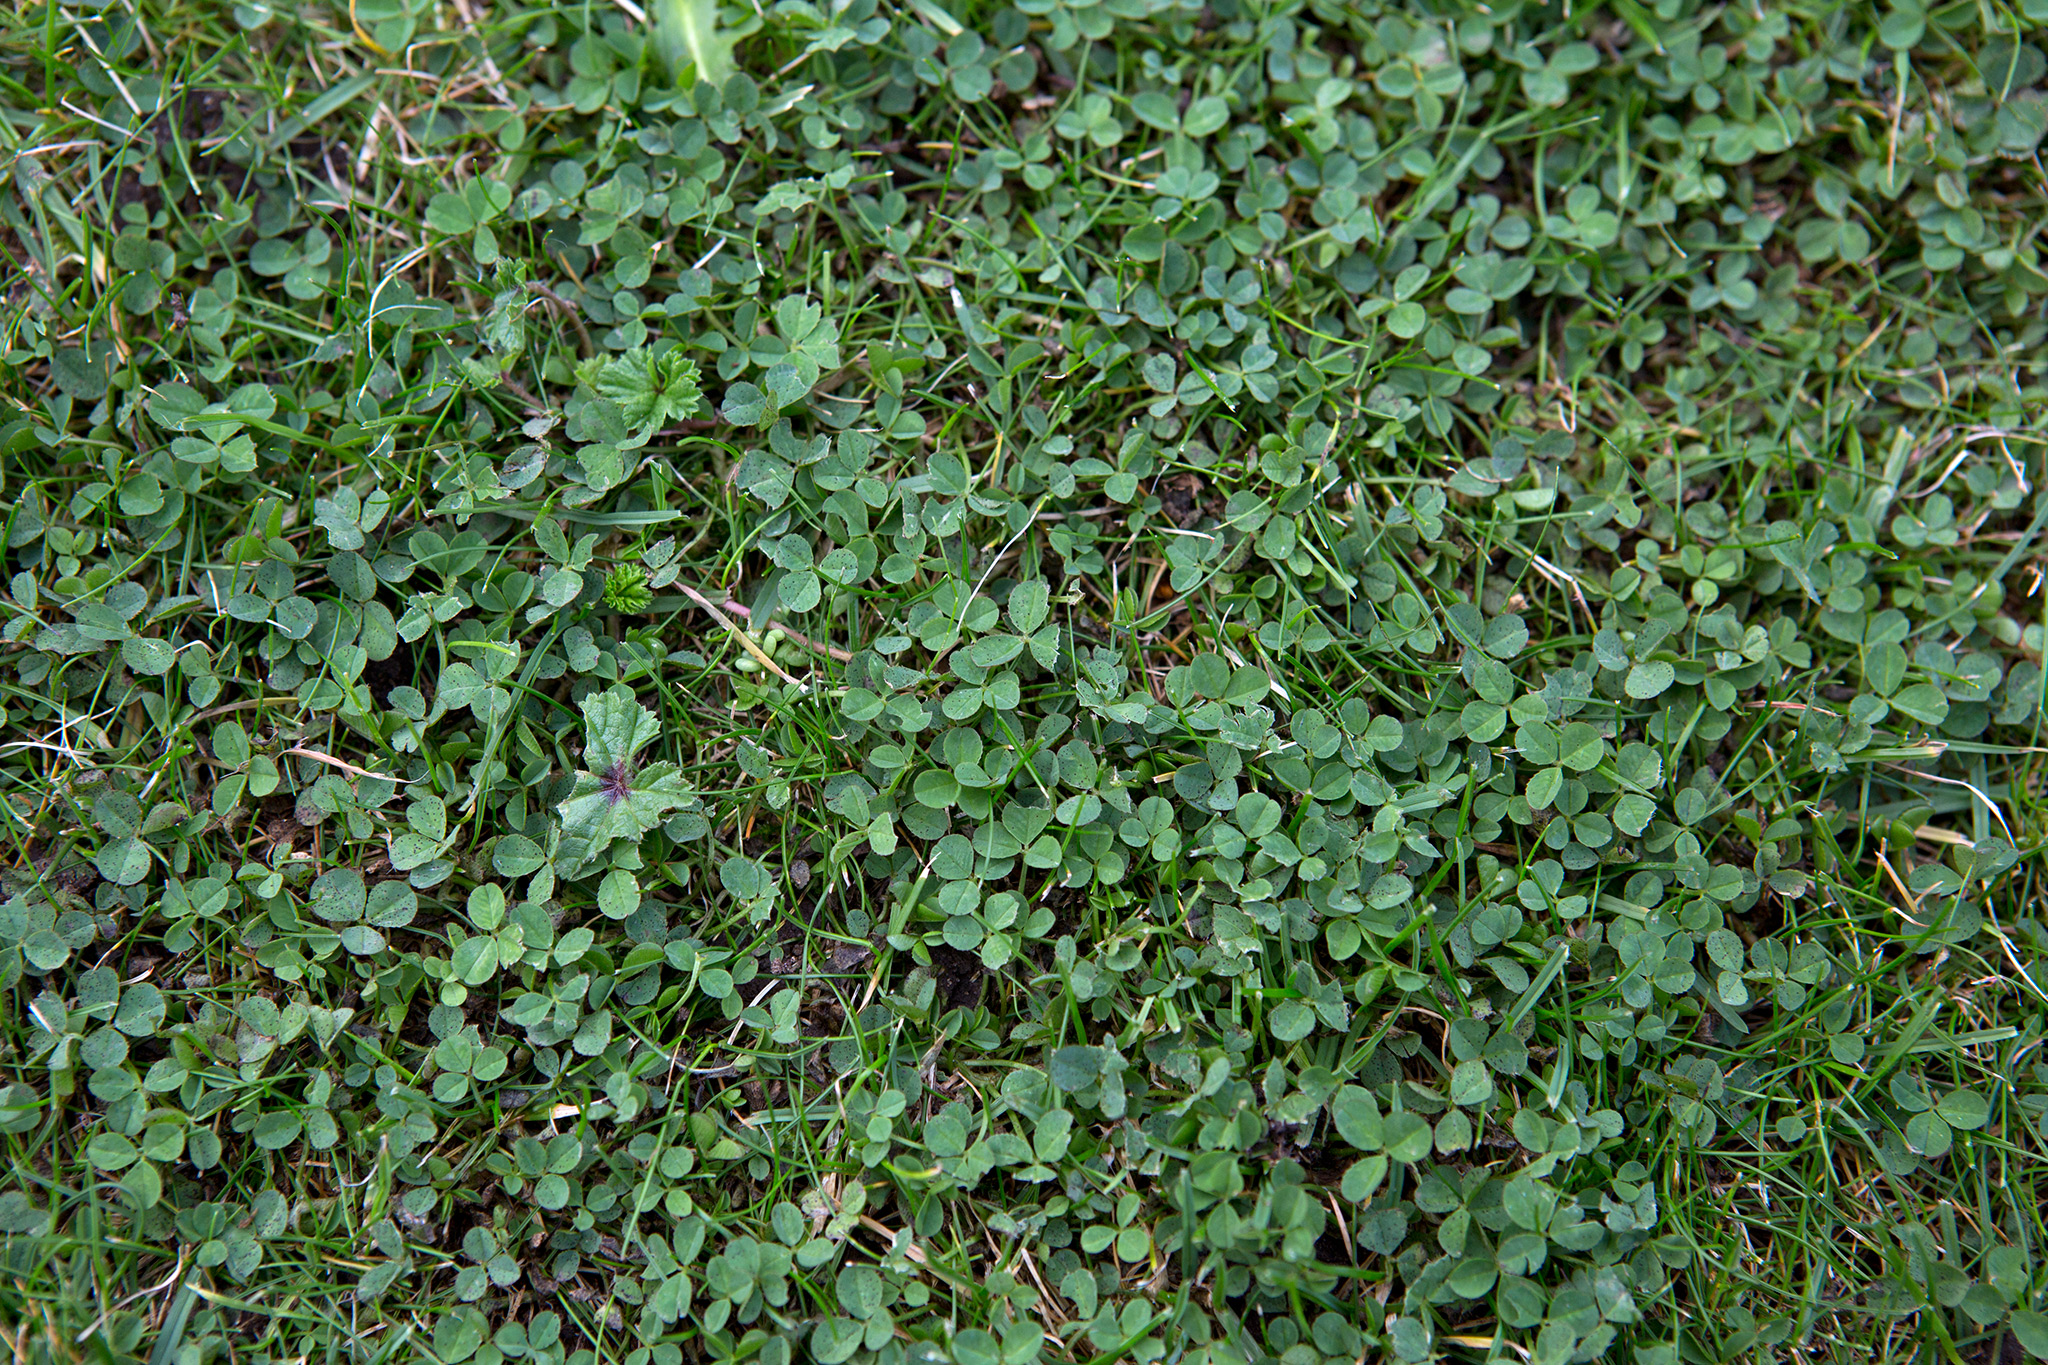 clover-growing-in-a-lawn-2